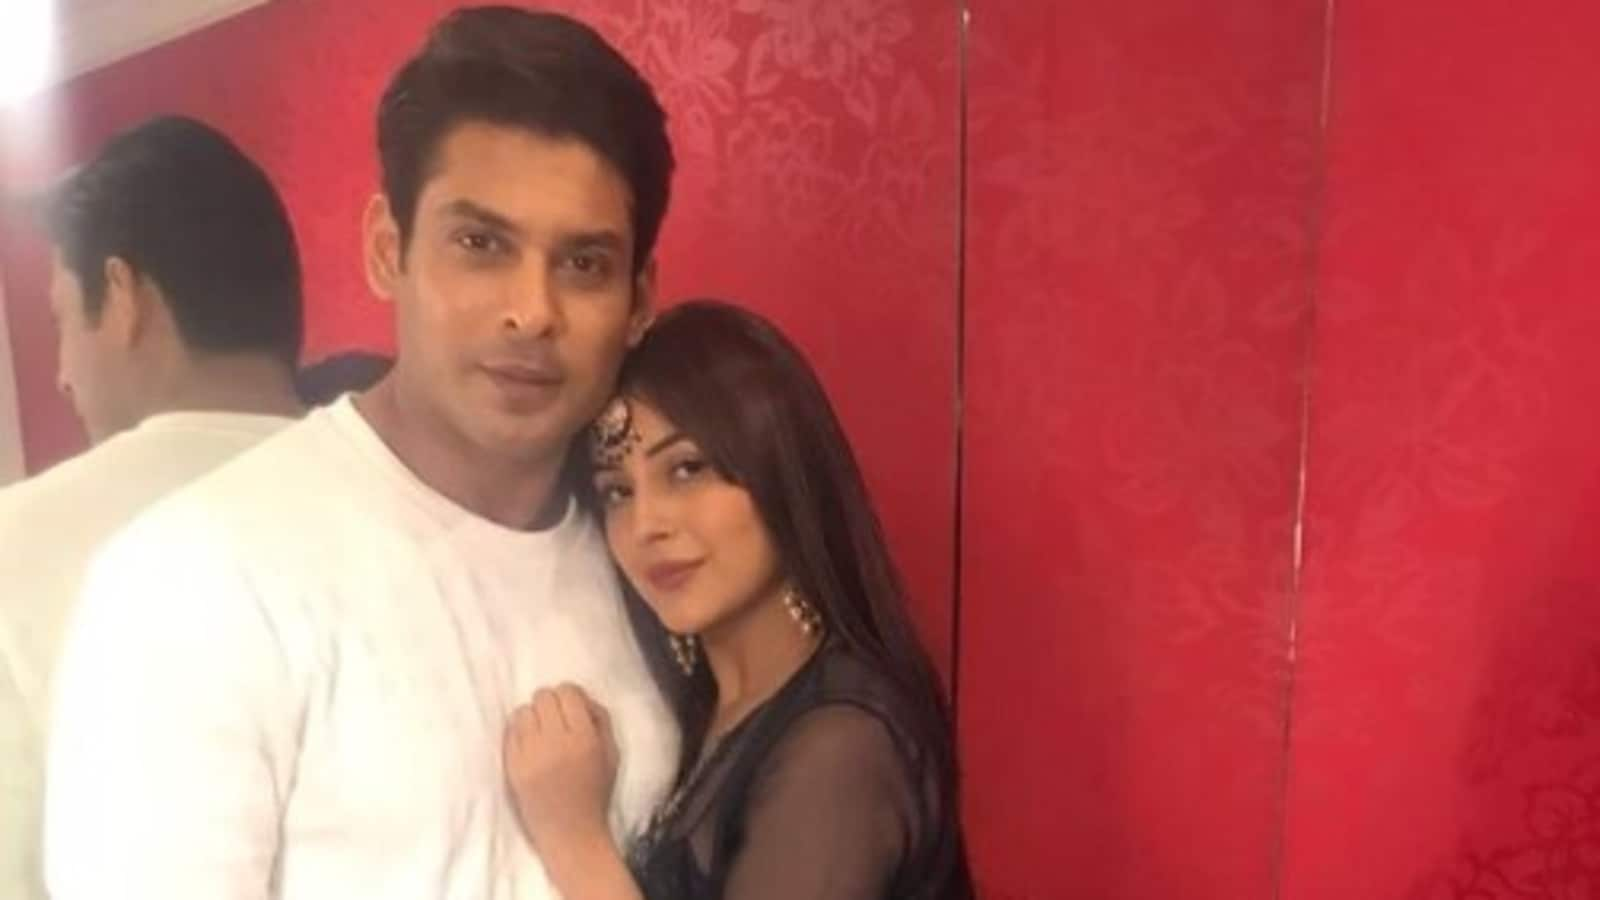 Shehnaaz Gill's father spoke to her after rumoured boyfriend Sidharth Shukla's death: 'She is not fine'